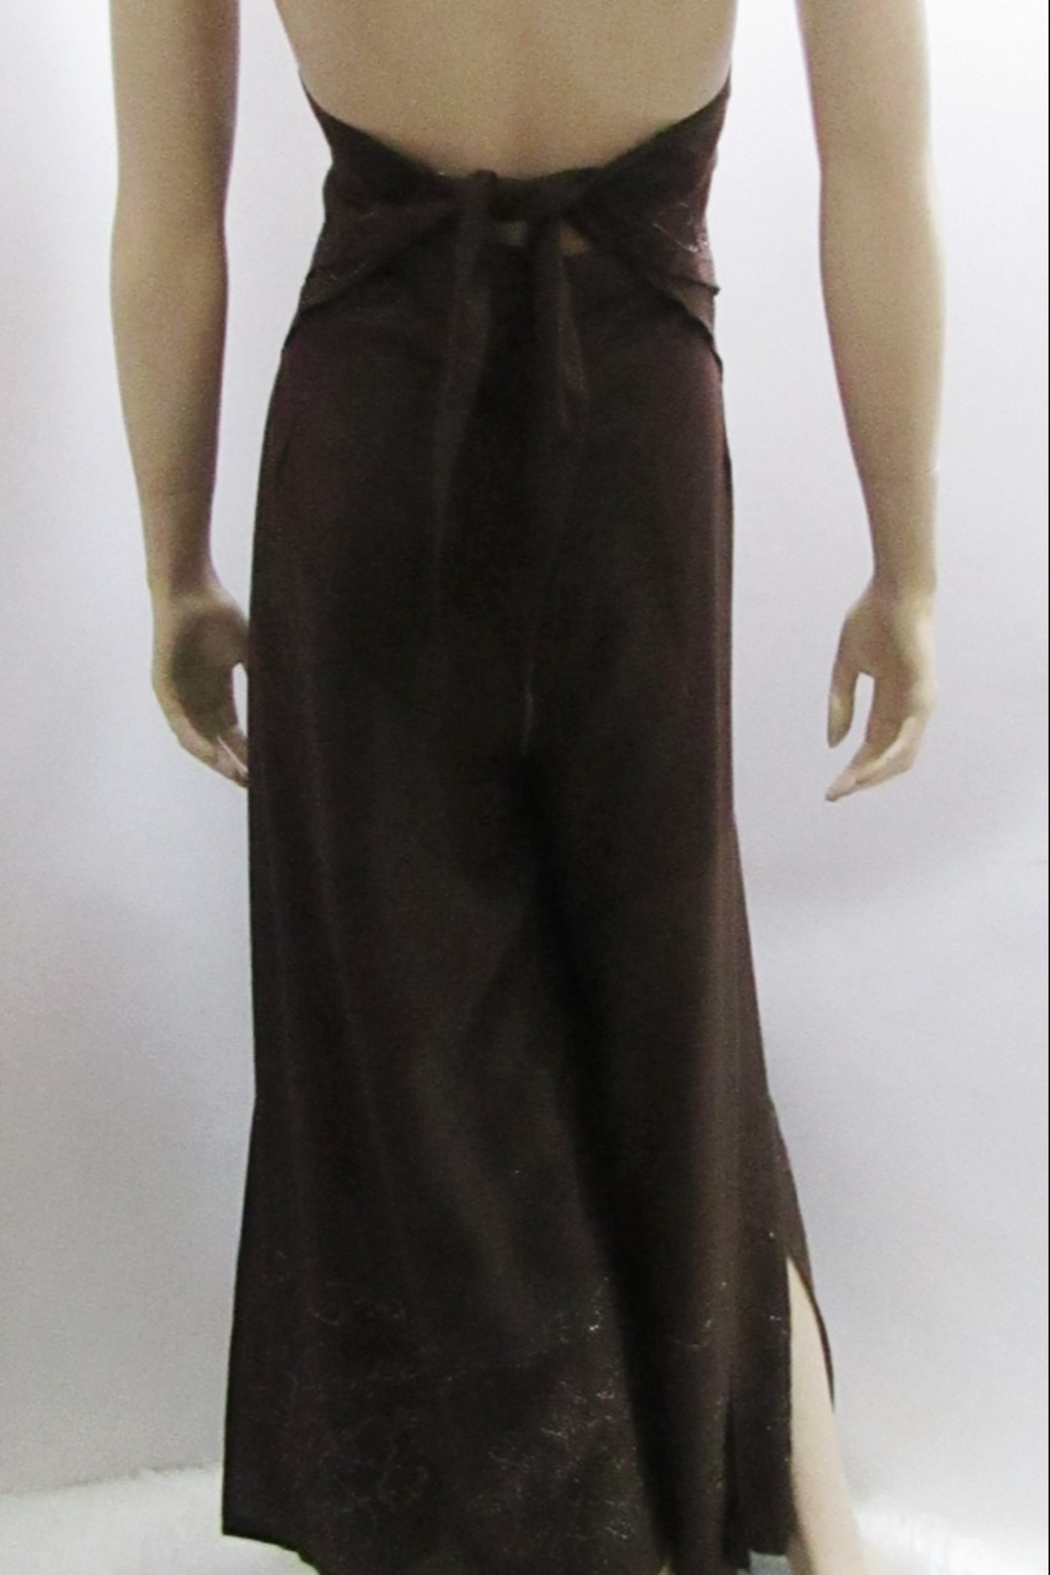 KIMBALS WRAP PANT SET in BROWN - Side Cropped Image